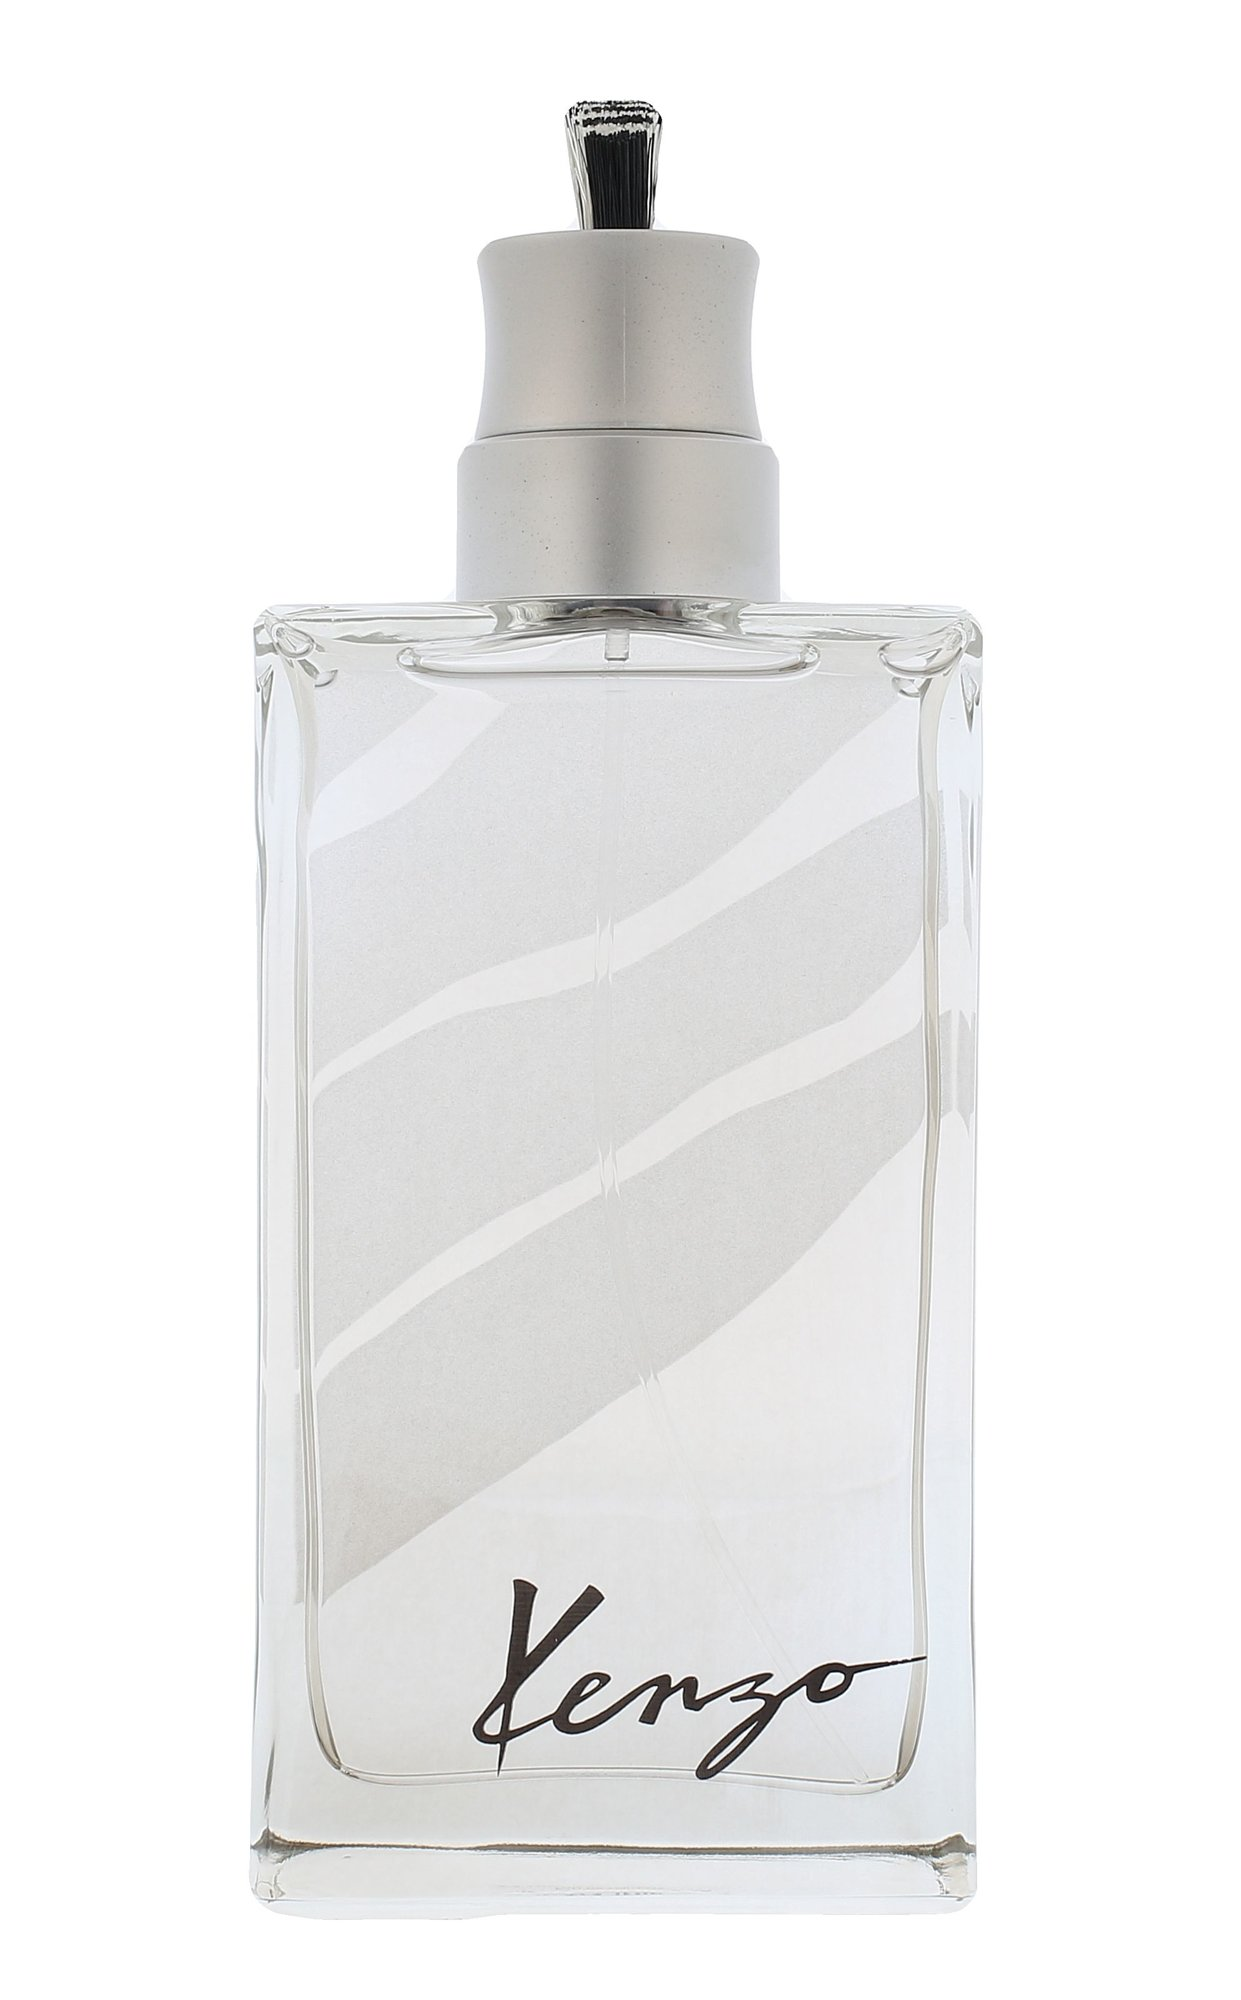 KENZO Kenzo Jungle Homme EDT 100ml